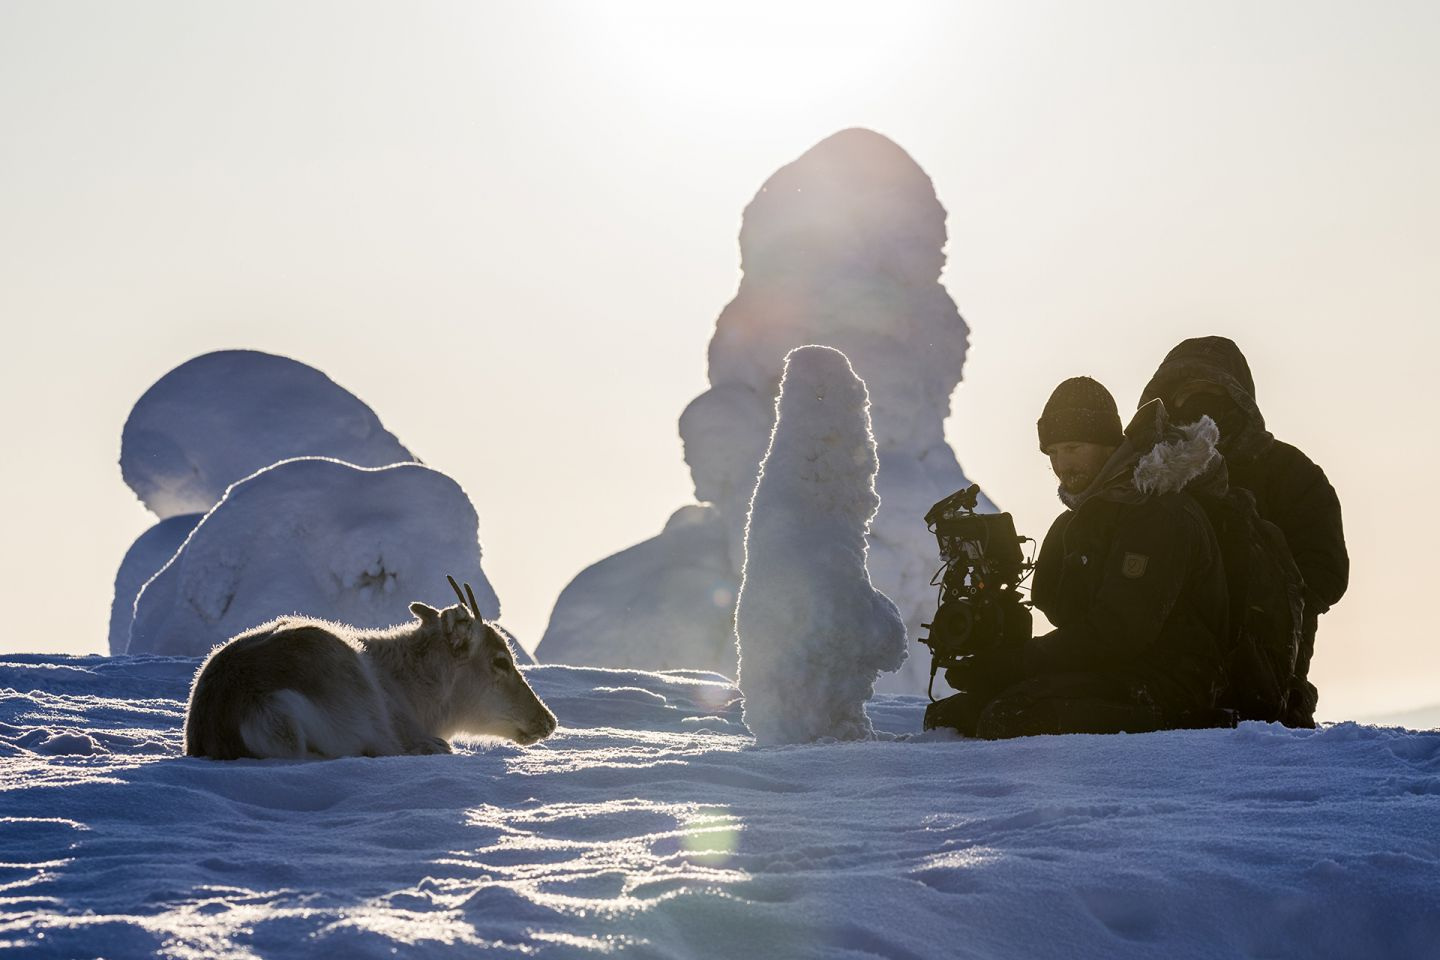 Filming reindeer in snowy Riisitunturi National Park, on production of A Reindeer's Journey